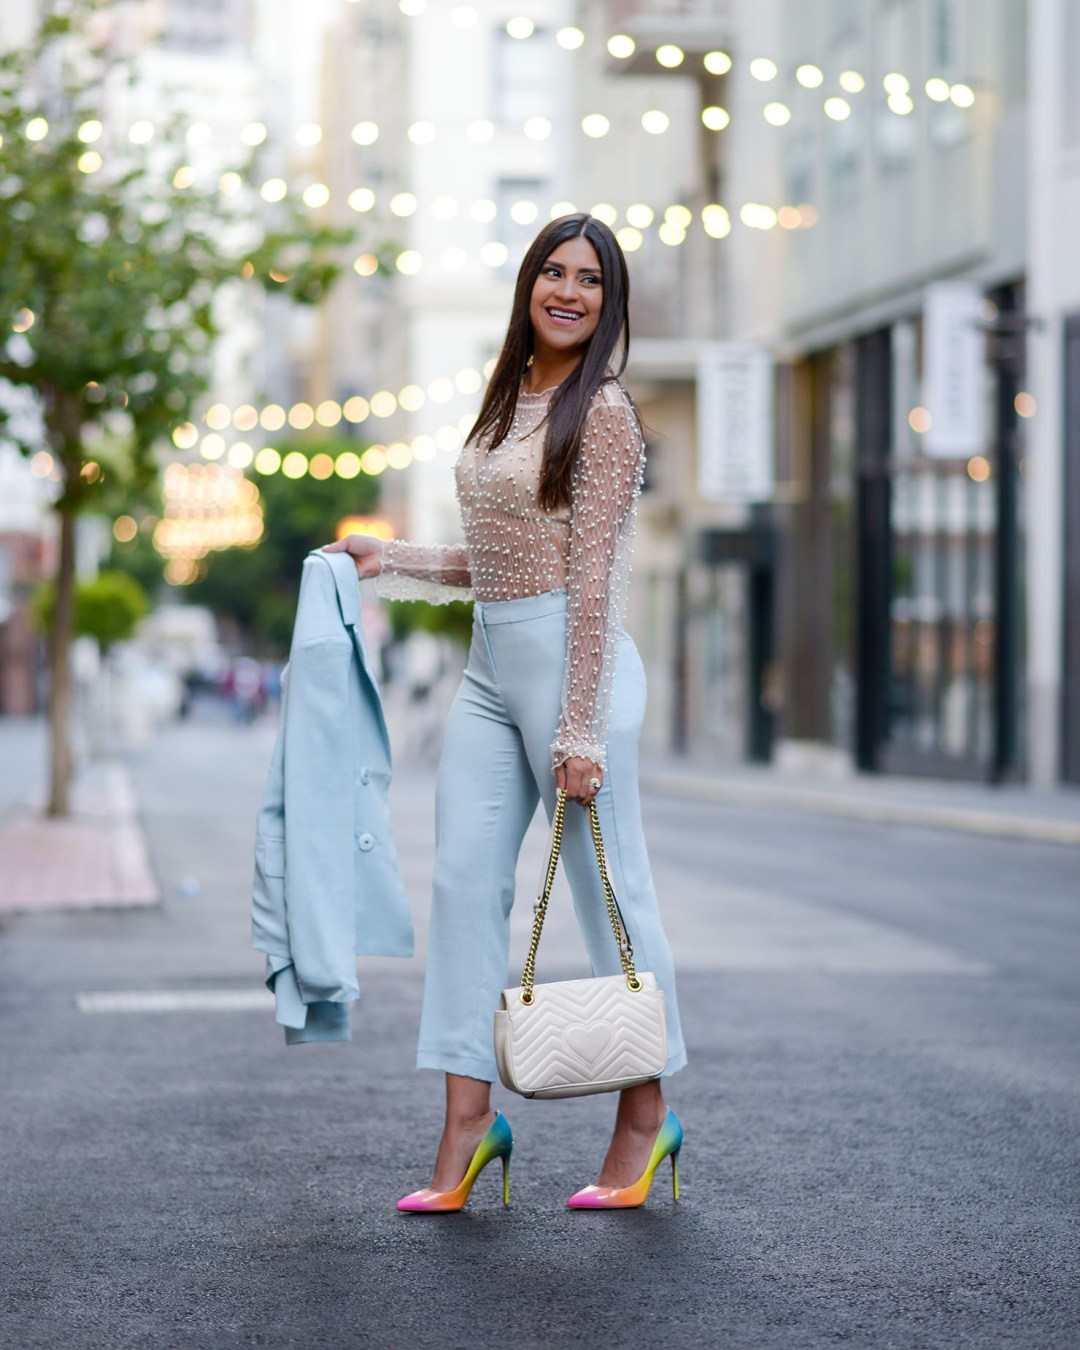 Lifestyle blogger Kelsey Kaplan of Kelsey Kaplan Fashion wearing blue suit and rainbow Christian Louboutin Pigalle Pumps